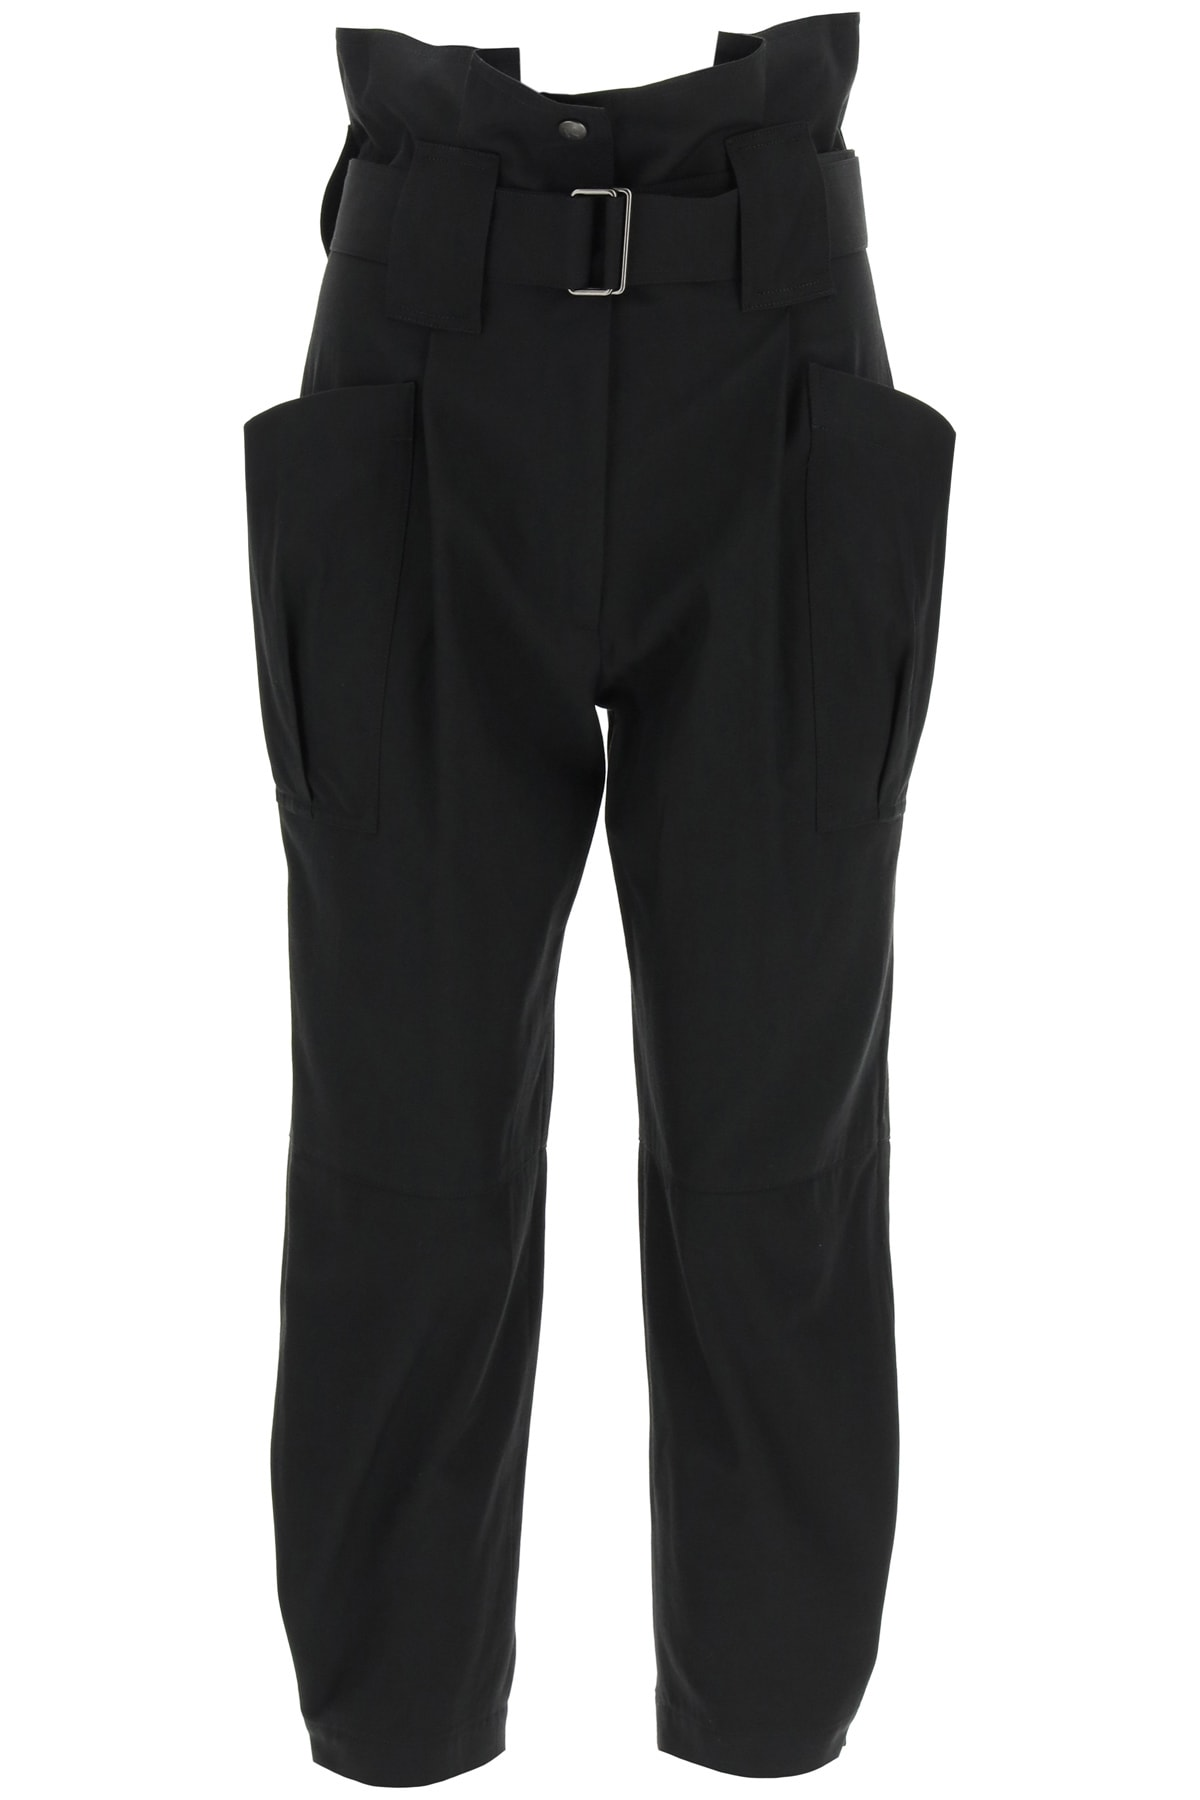 Kenzo Cropped pants PAPER BAG TROUSERS